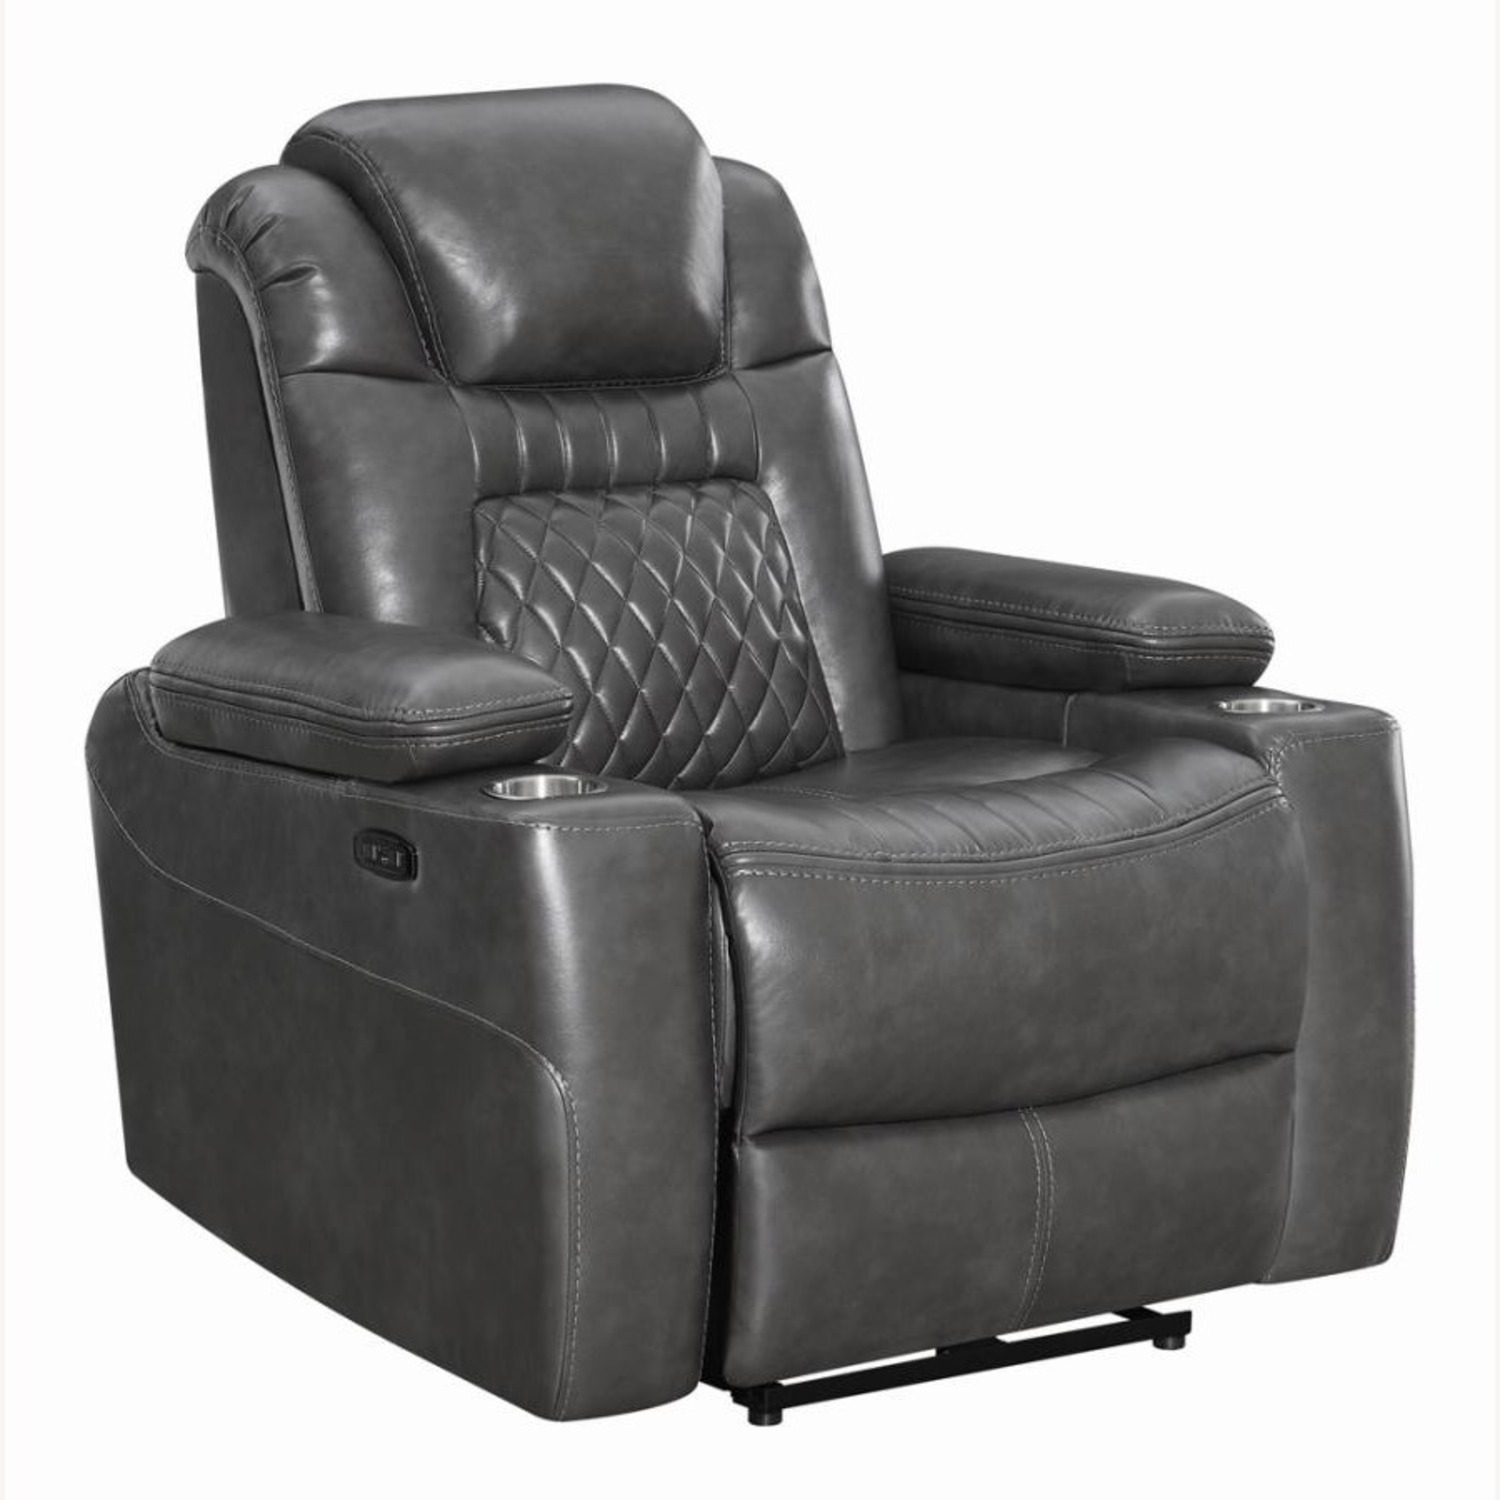 Power Recliner In Charcoal Microfiber Upholstery - image-0